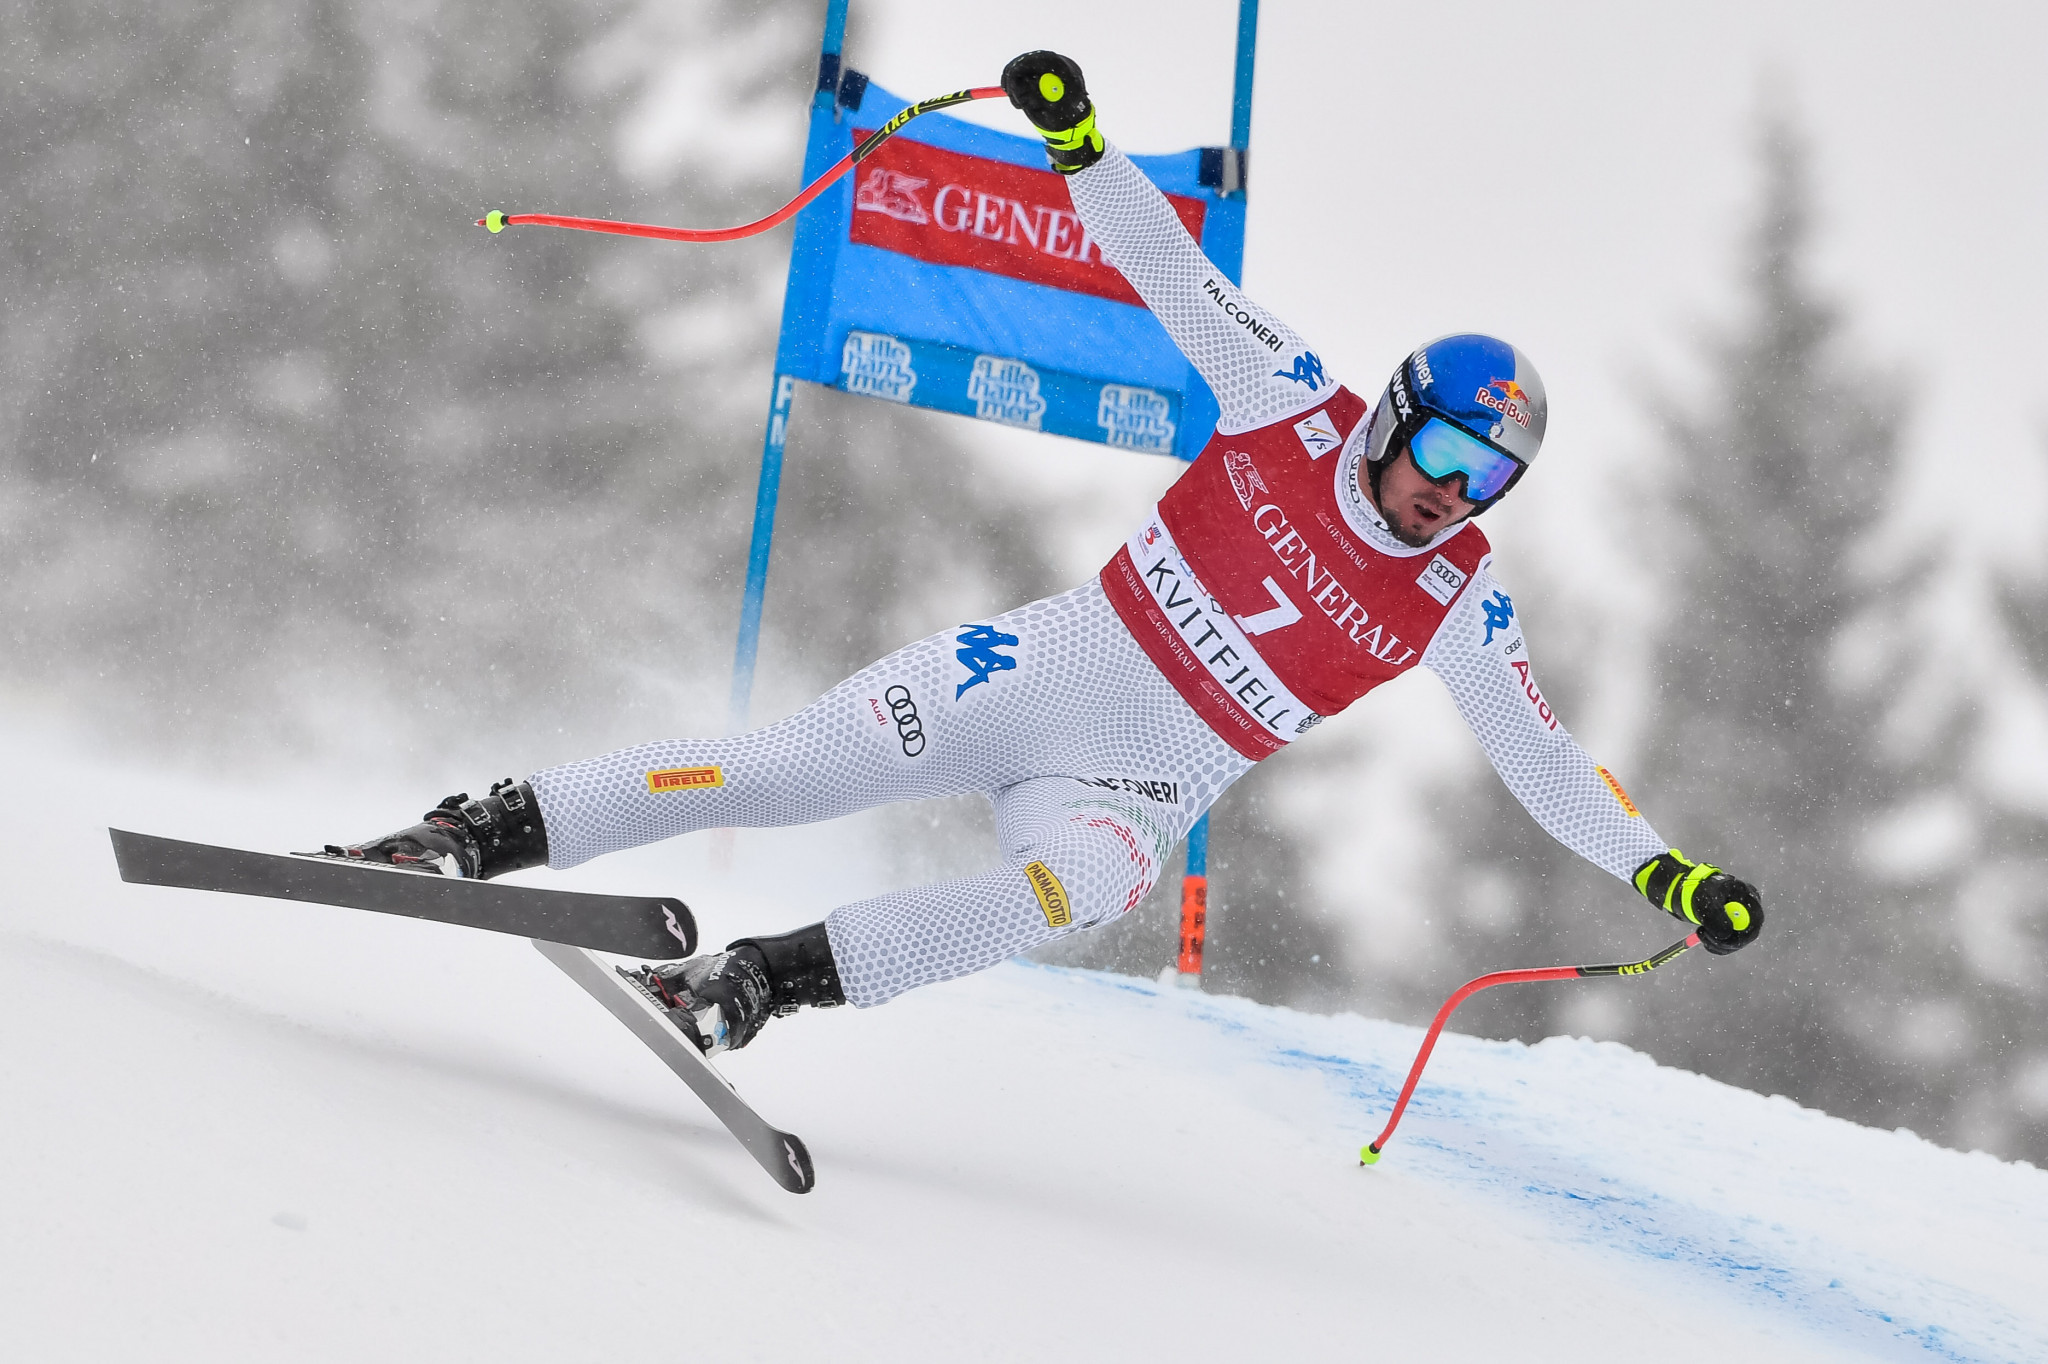 Paris takes overall super-G lead with second victory at FIS Alpine Skiing World Cup in Kvitfjell